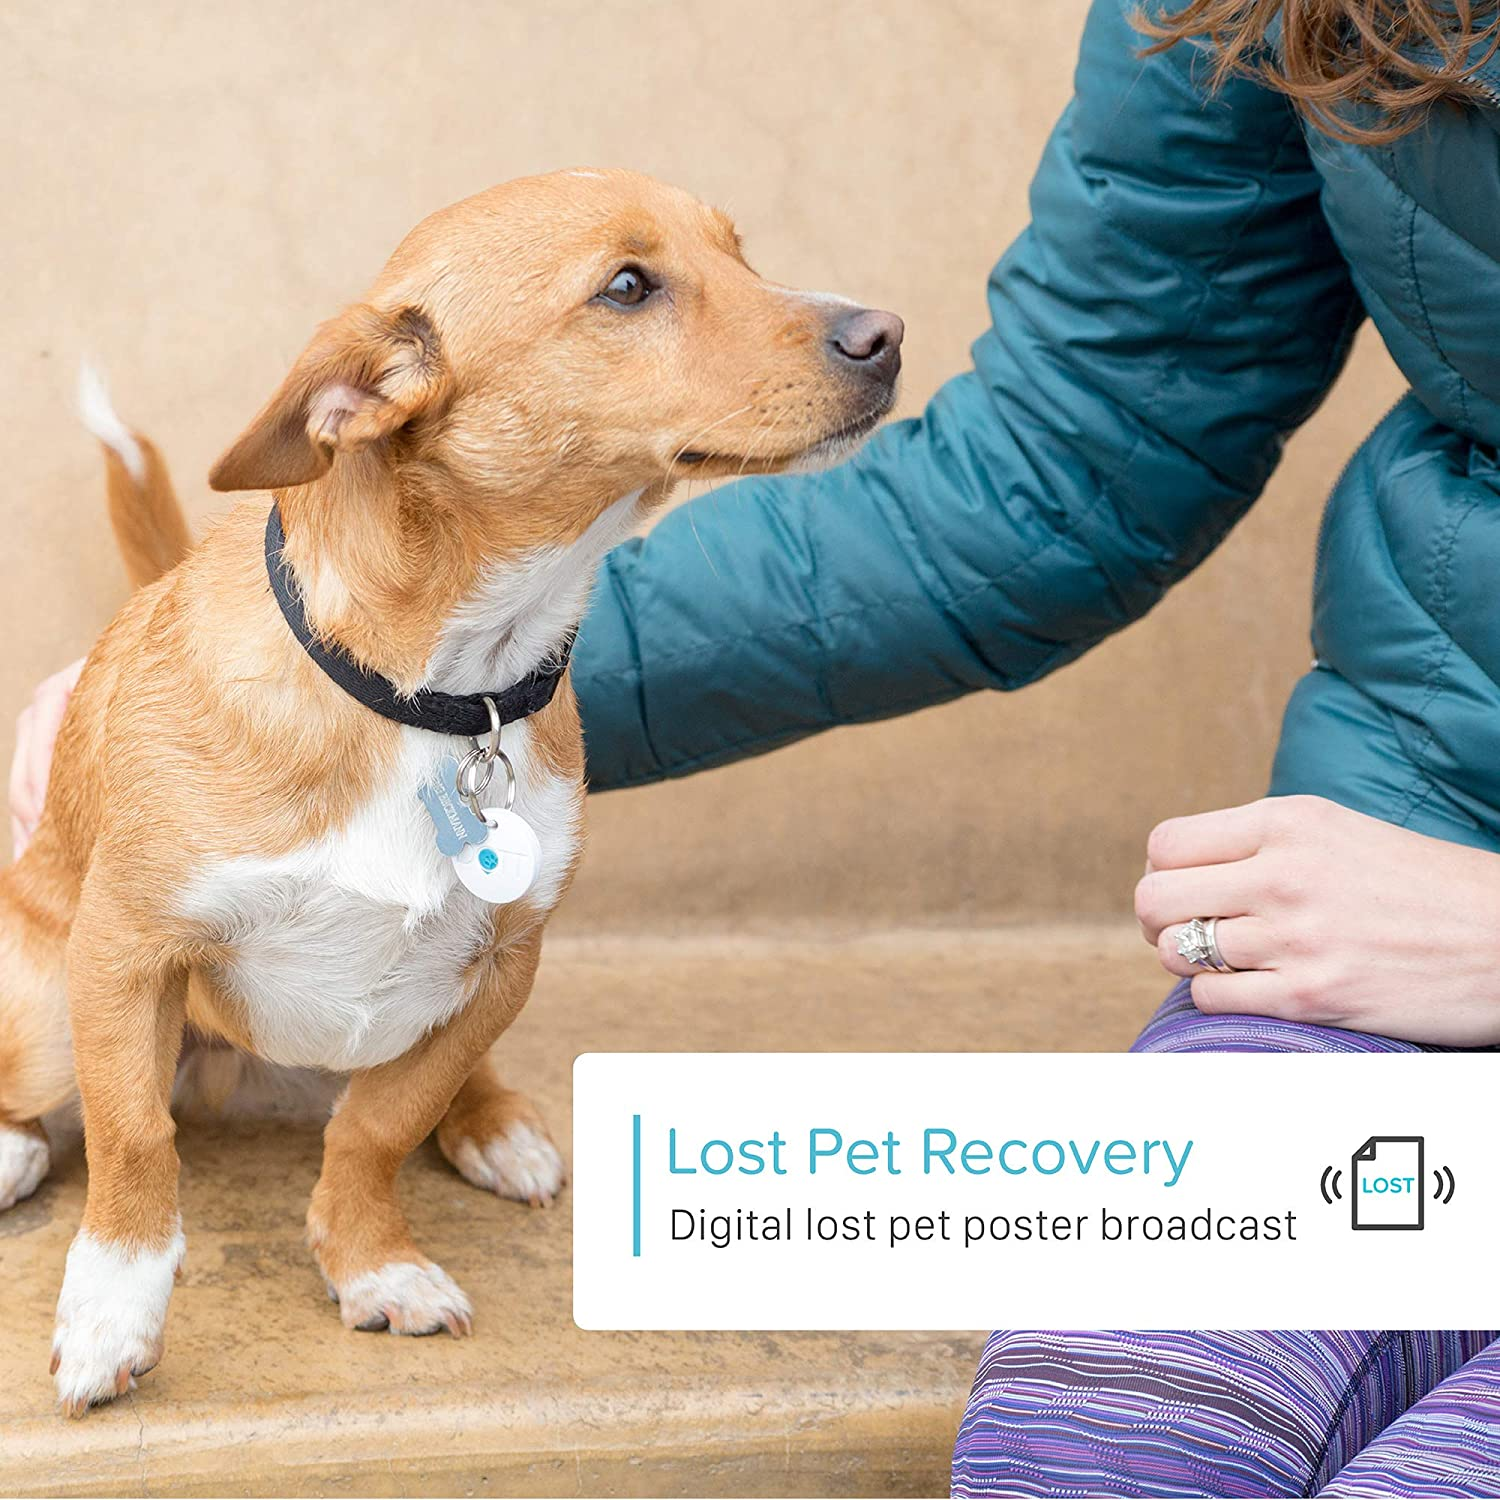 Every Missing Pet Poster Tells Story >> Amazon Com Dott The Smart Dog Tag Bluetooth Tracker For Dogs And